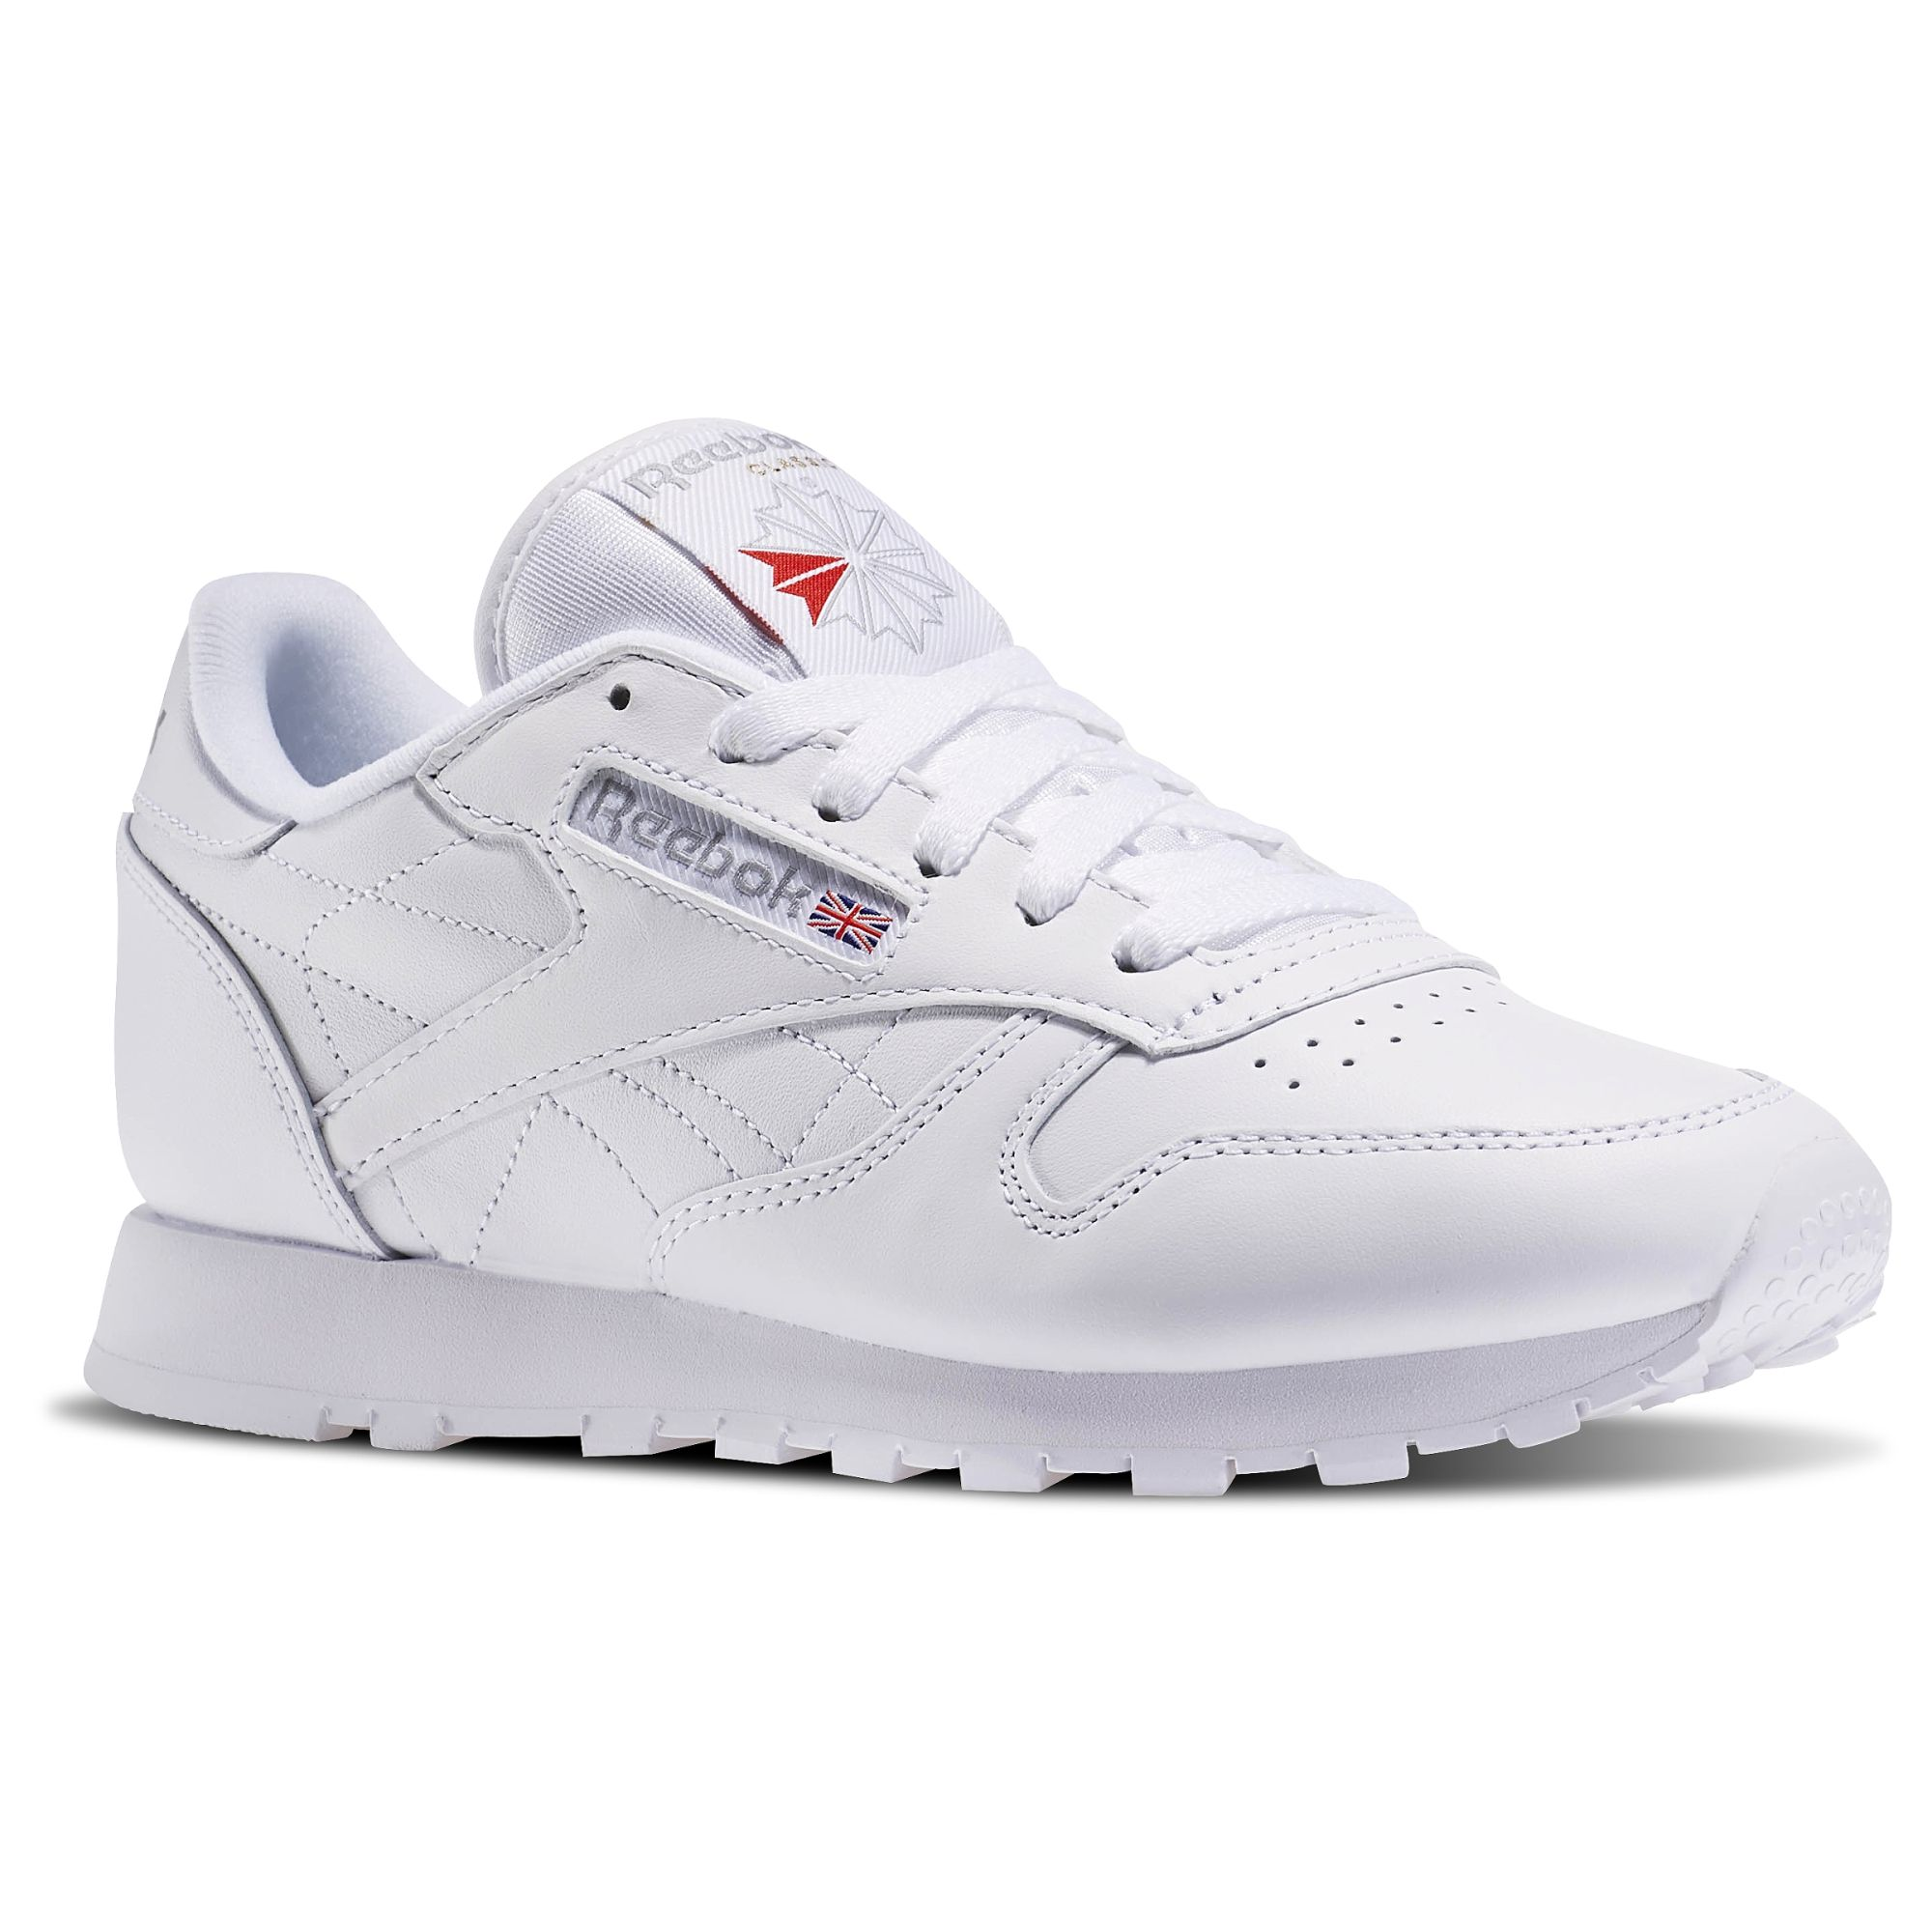 Reebok Shoes Women S Classic Leather In White Size 5 Lifestyle Shoes Classic Leather White Leather Shoes White Reebok